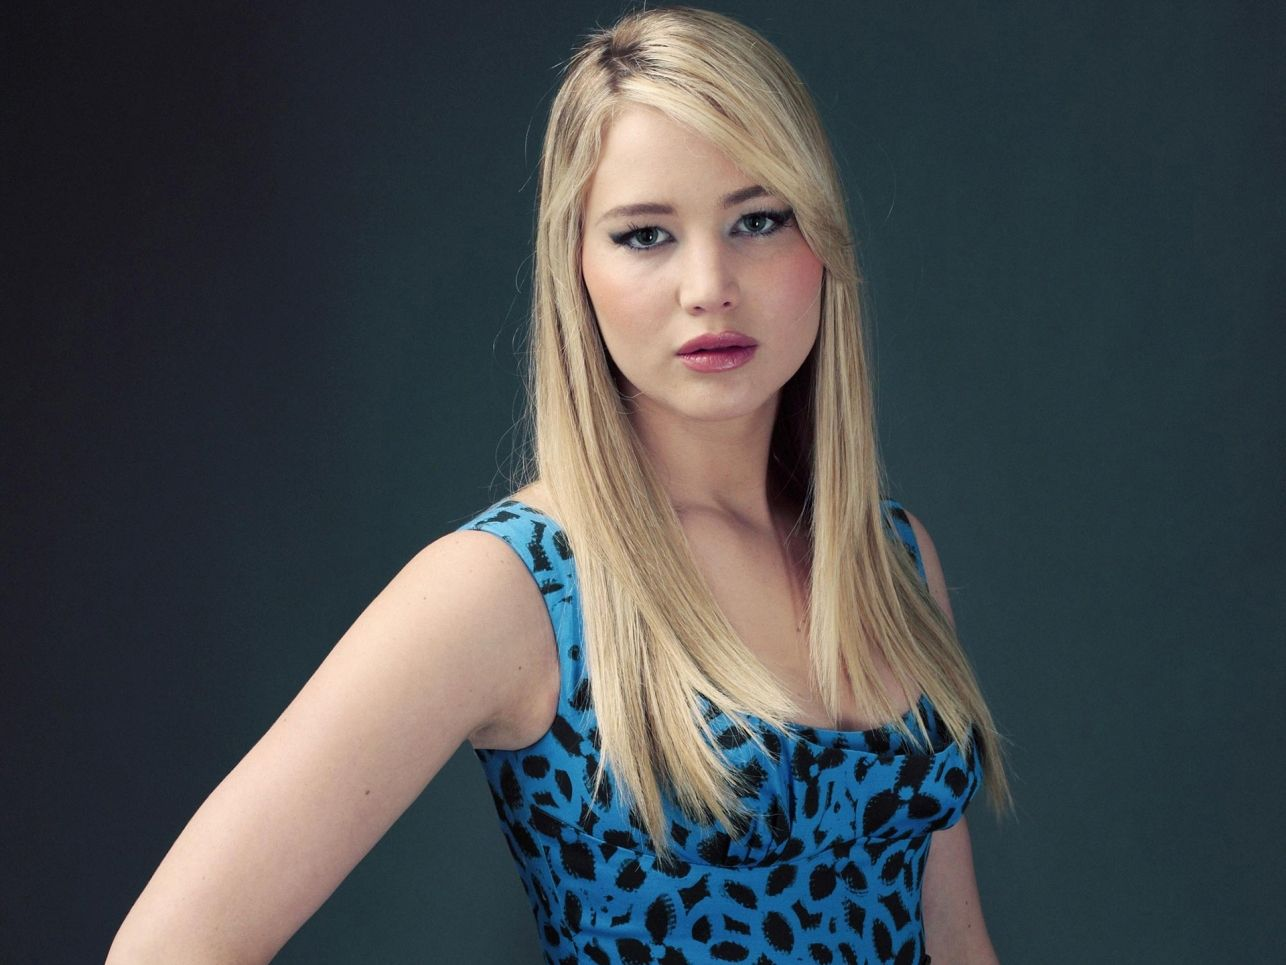 22 hottest photos of American actress Jennifer Lawrence